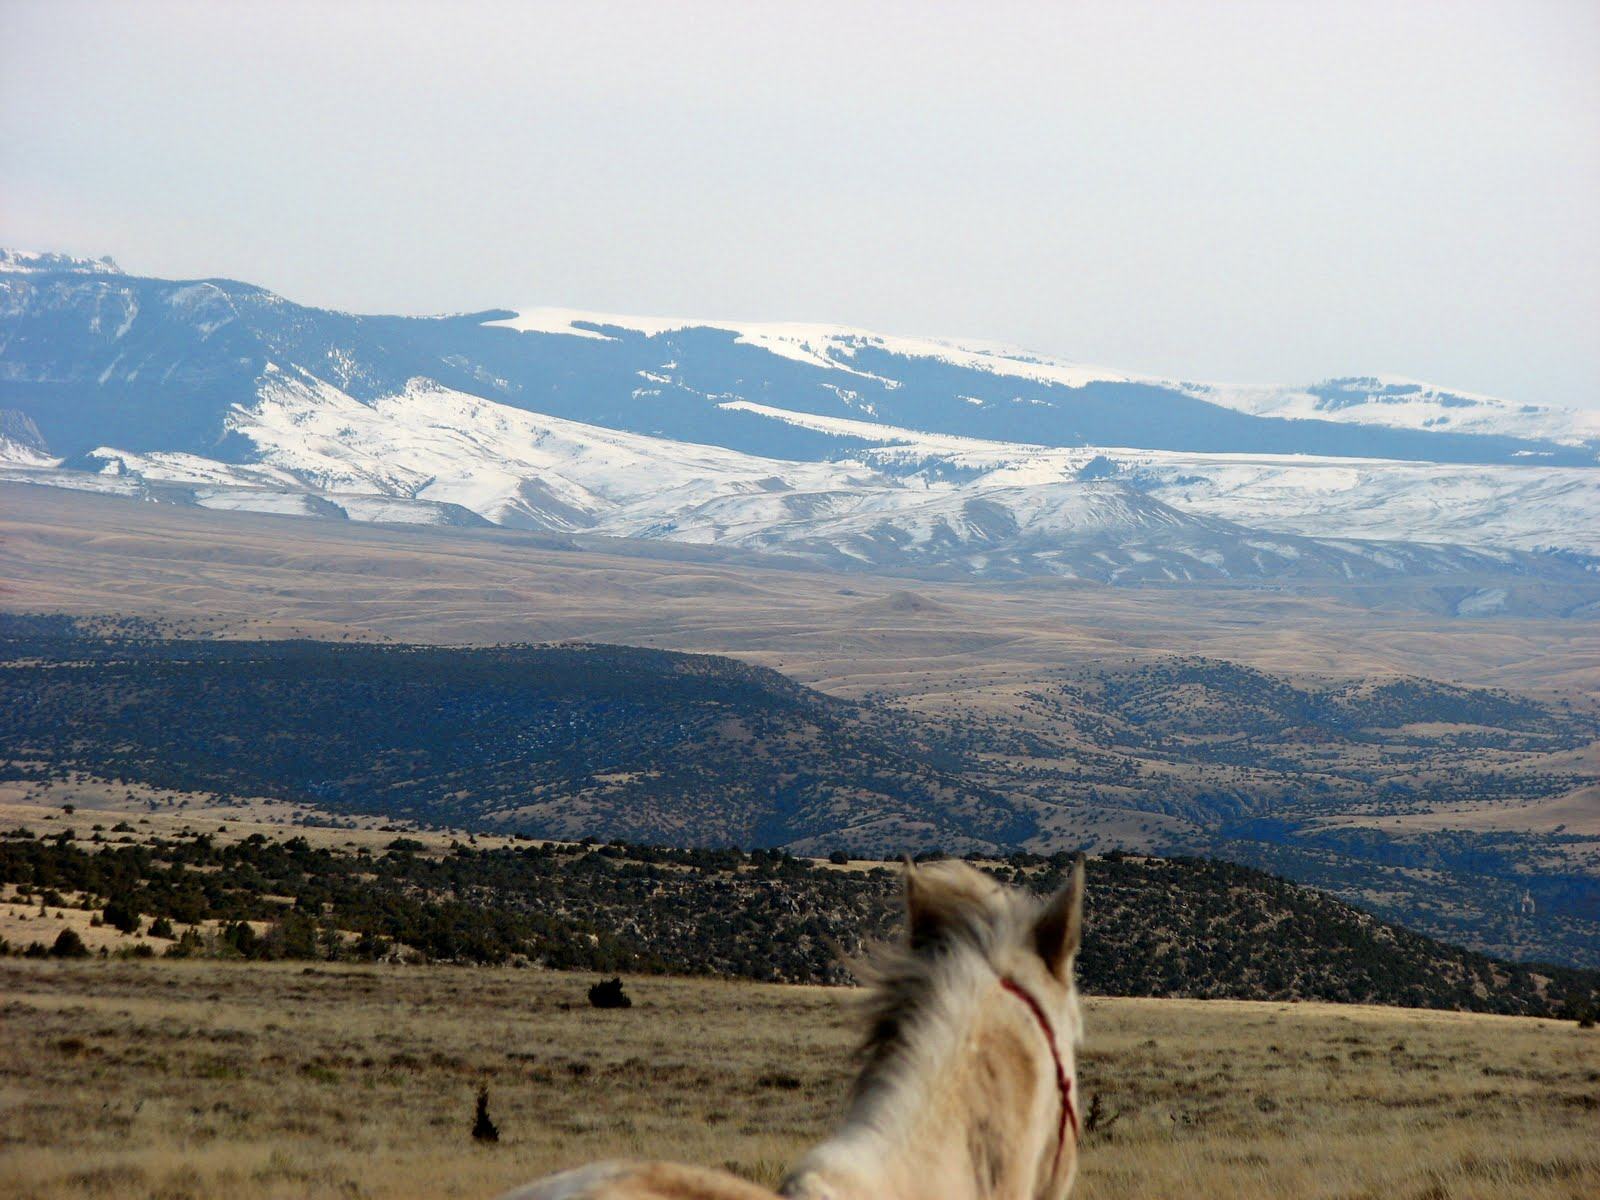 The view from horseback!